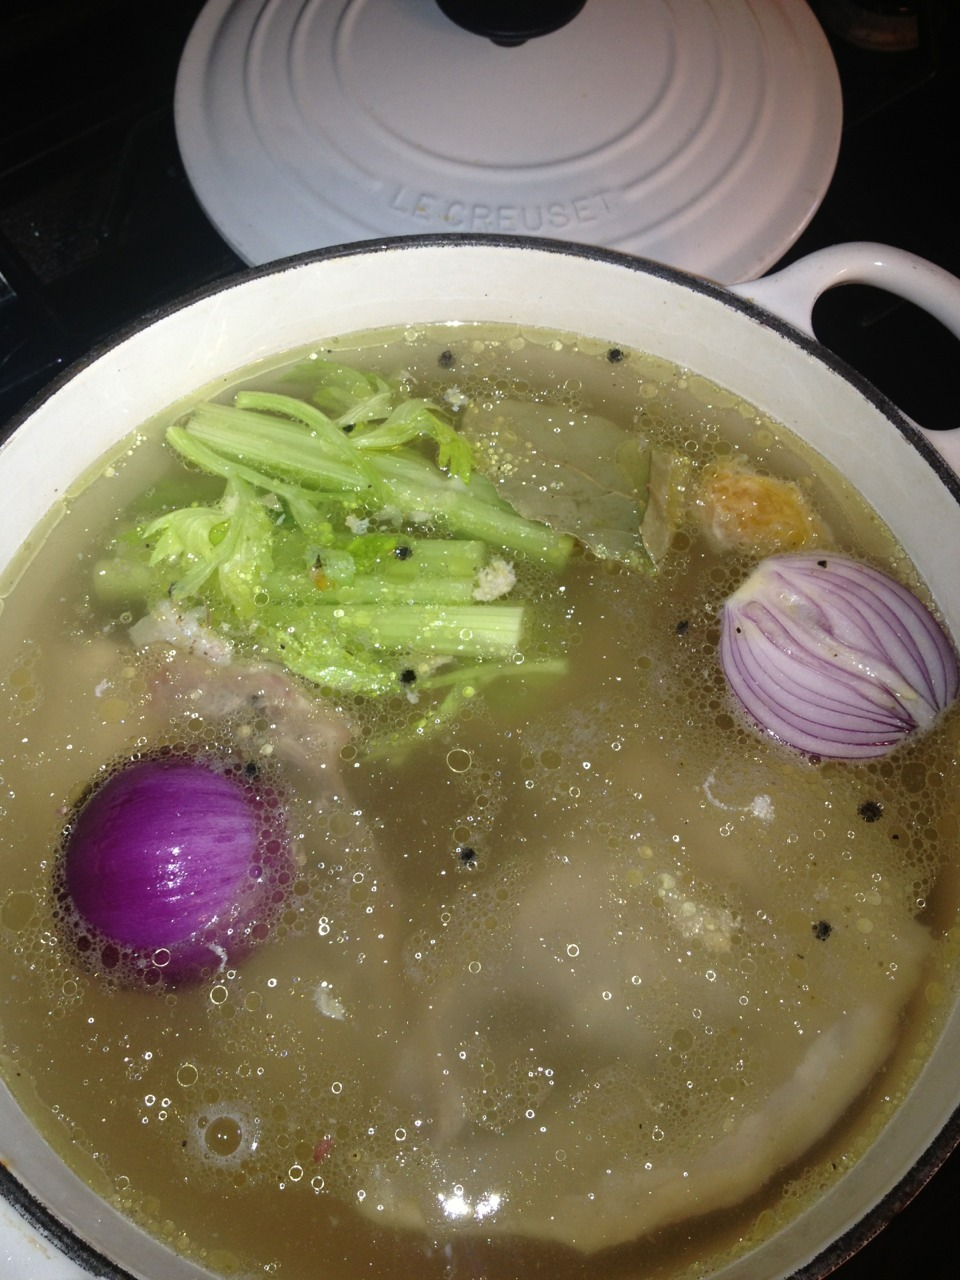 womaninterrupted:  Start to finish Italian Wedding Soup. I even snuck some spinach in with the escarole and carrots. The kids go crazy for this stuff. Best part is making them work for it. I had them roll the mini meatballs.  In case you forgot to track the tag, you should know it's still going strong.